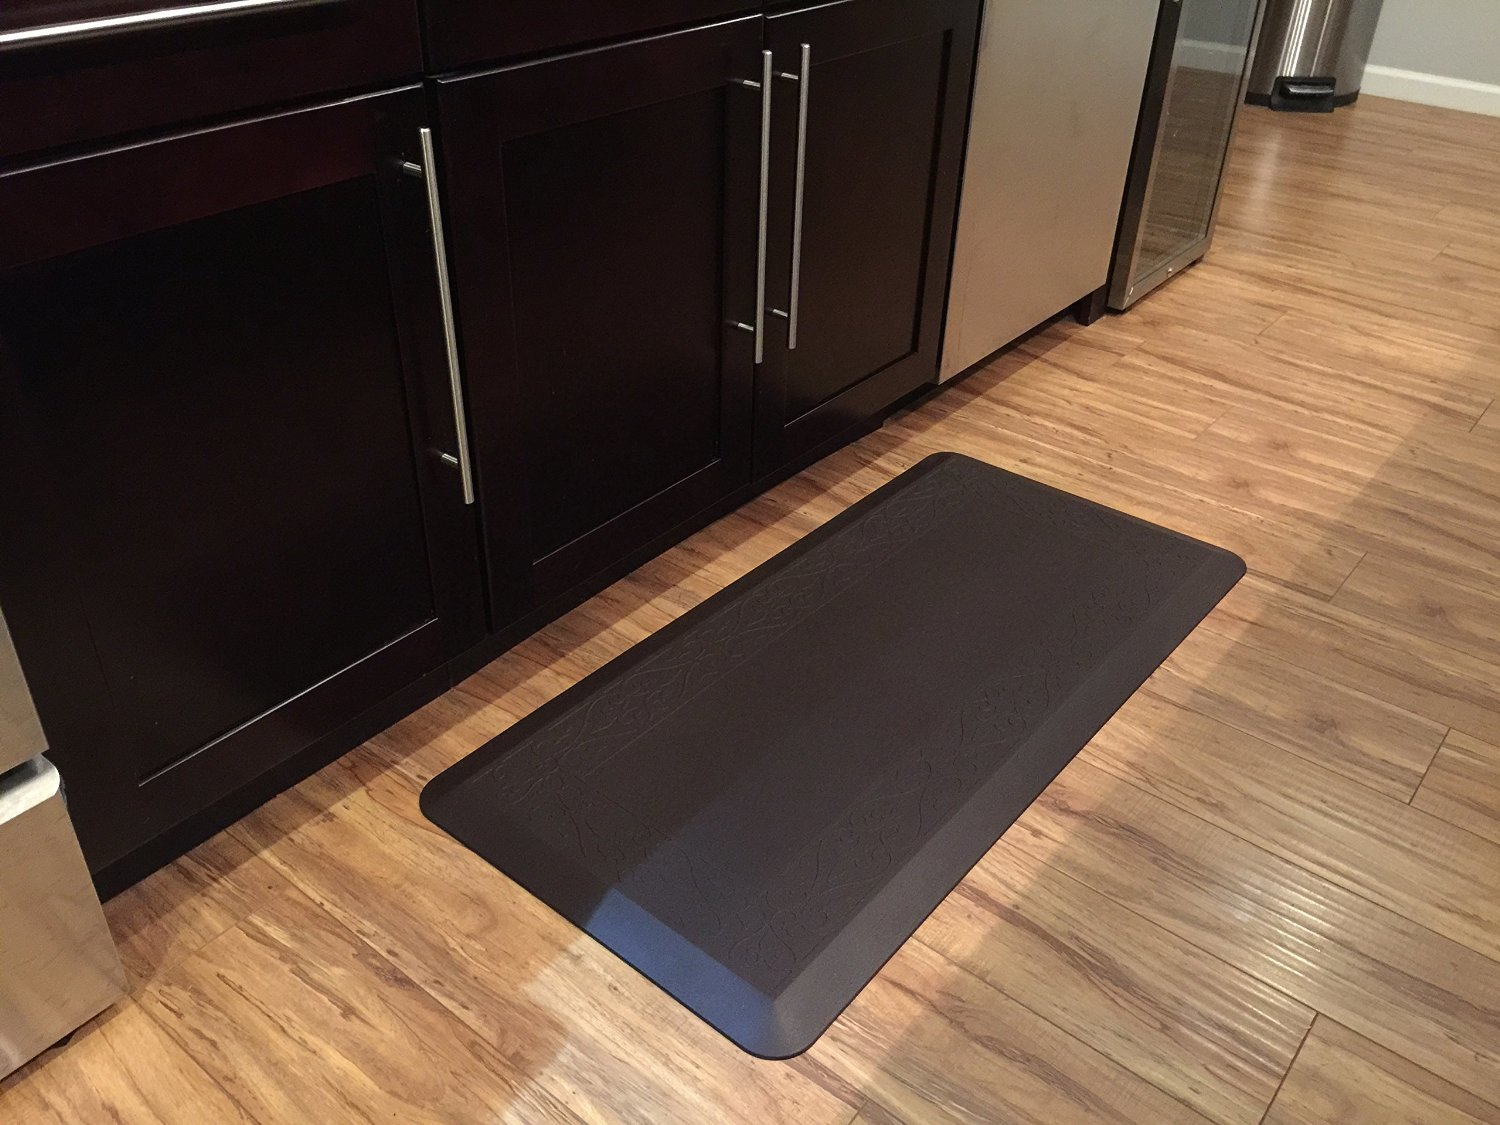 kitchen fatigue mats blue chairs novaform anti mat 20in x 42in color dark